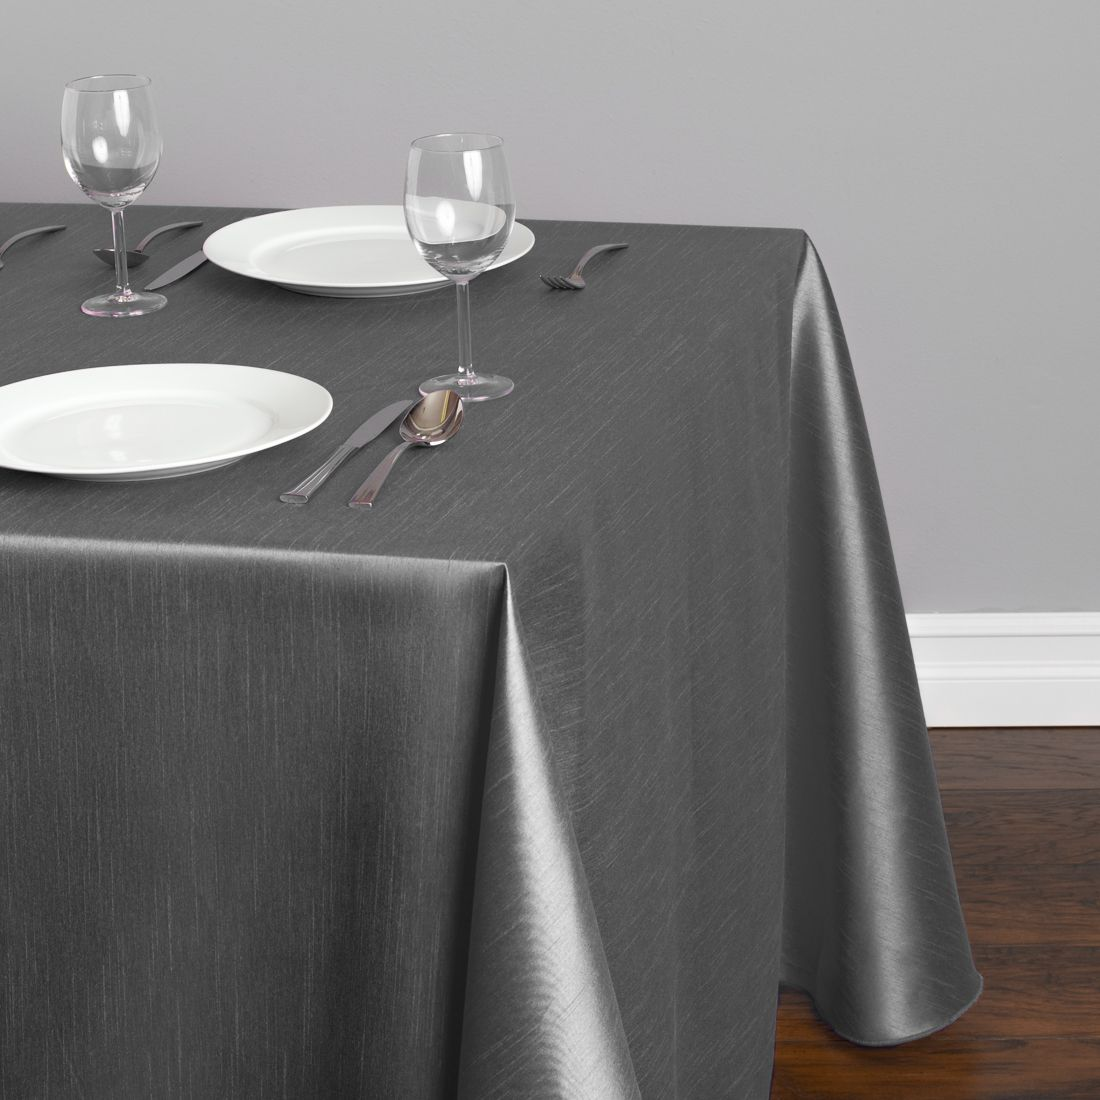 A Silk Tablecloth Is The Luxurious Alternative To Satin, Especially A  Shantung Tablecloth With A Crisp Feel, Subtle U201clinedu201d Texture, And Lustrous  Finish.